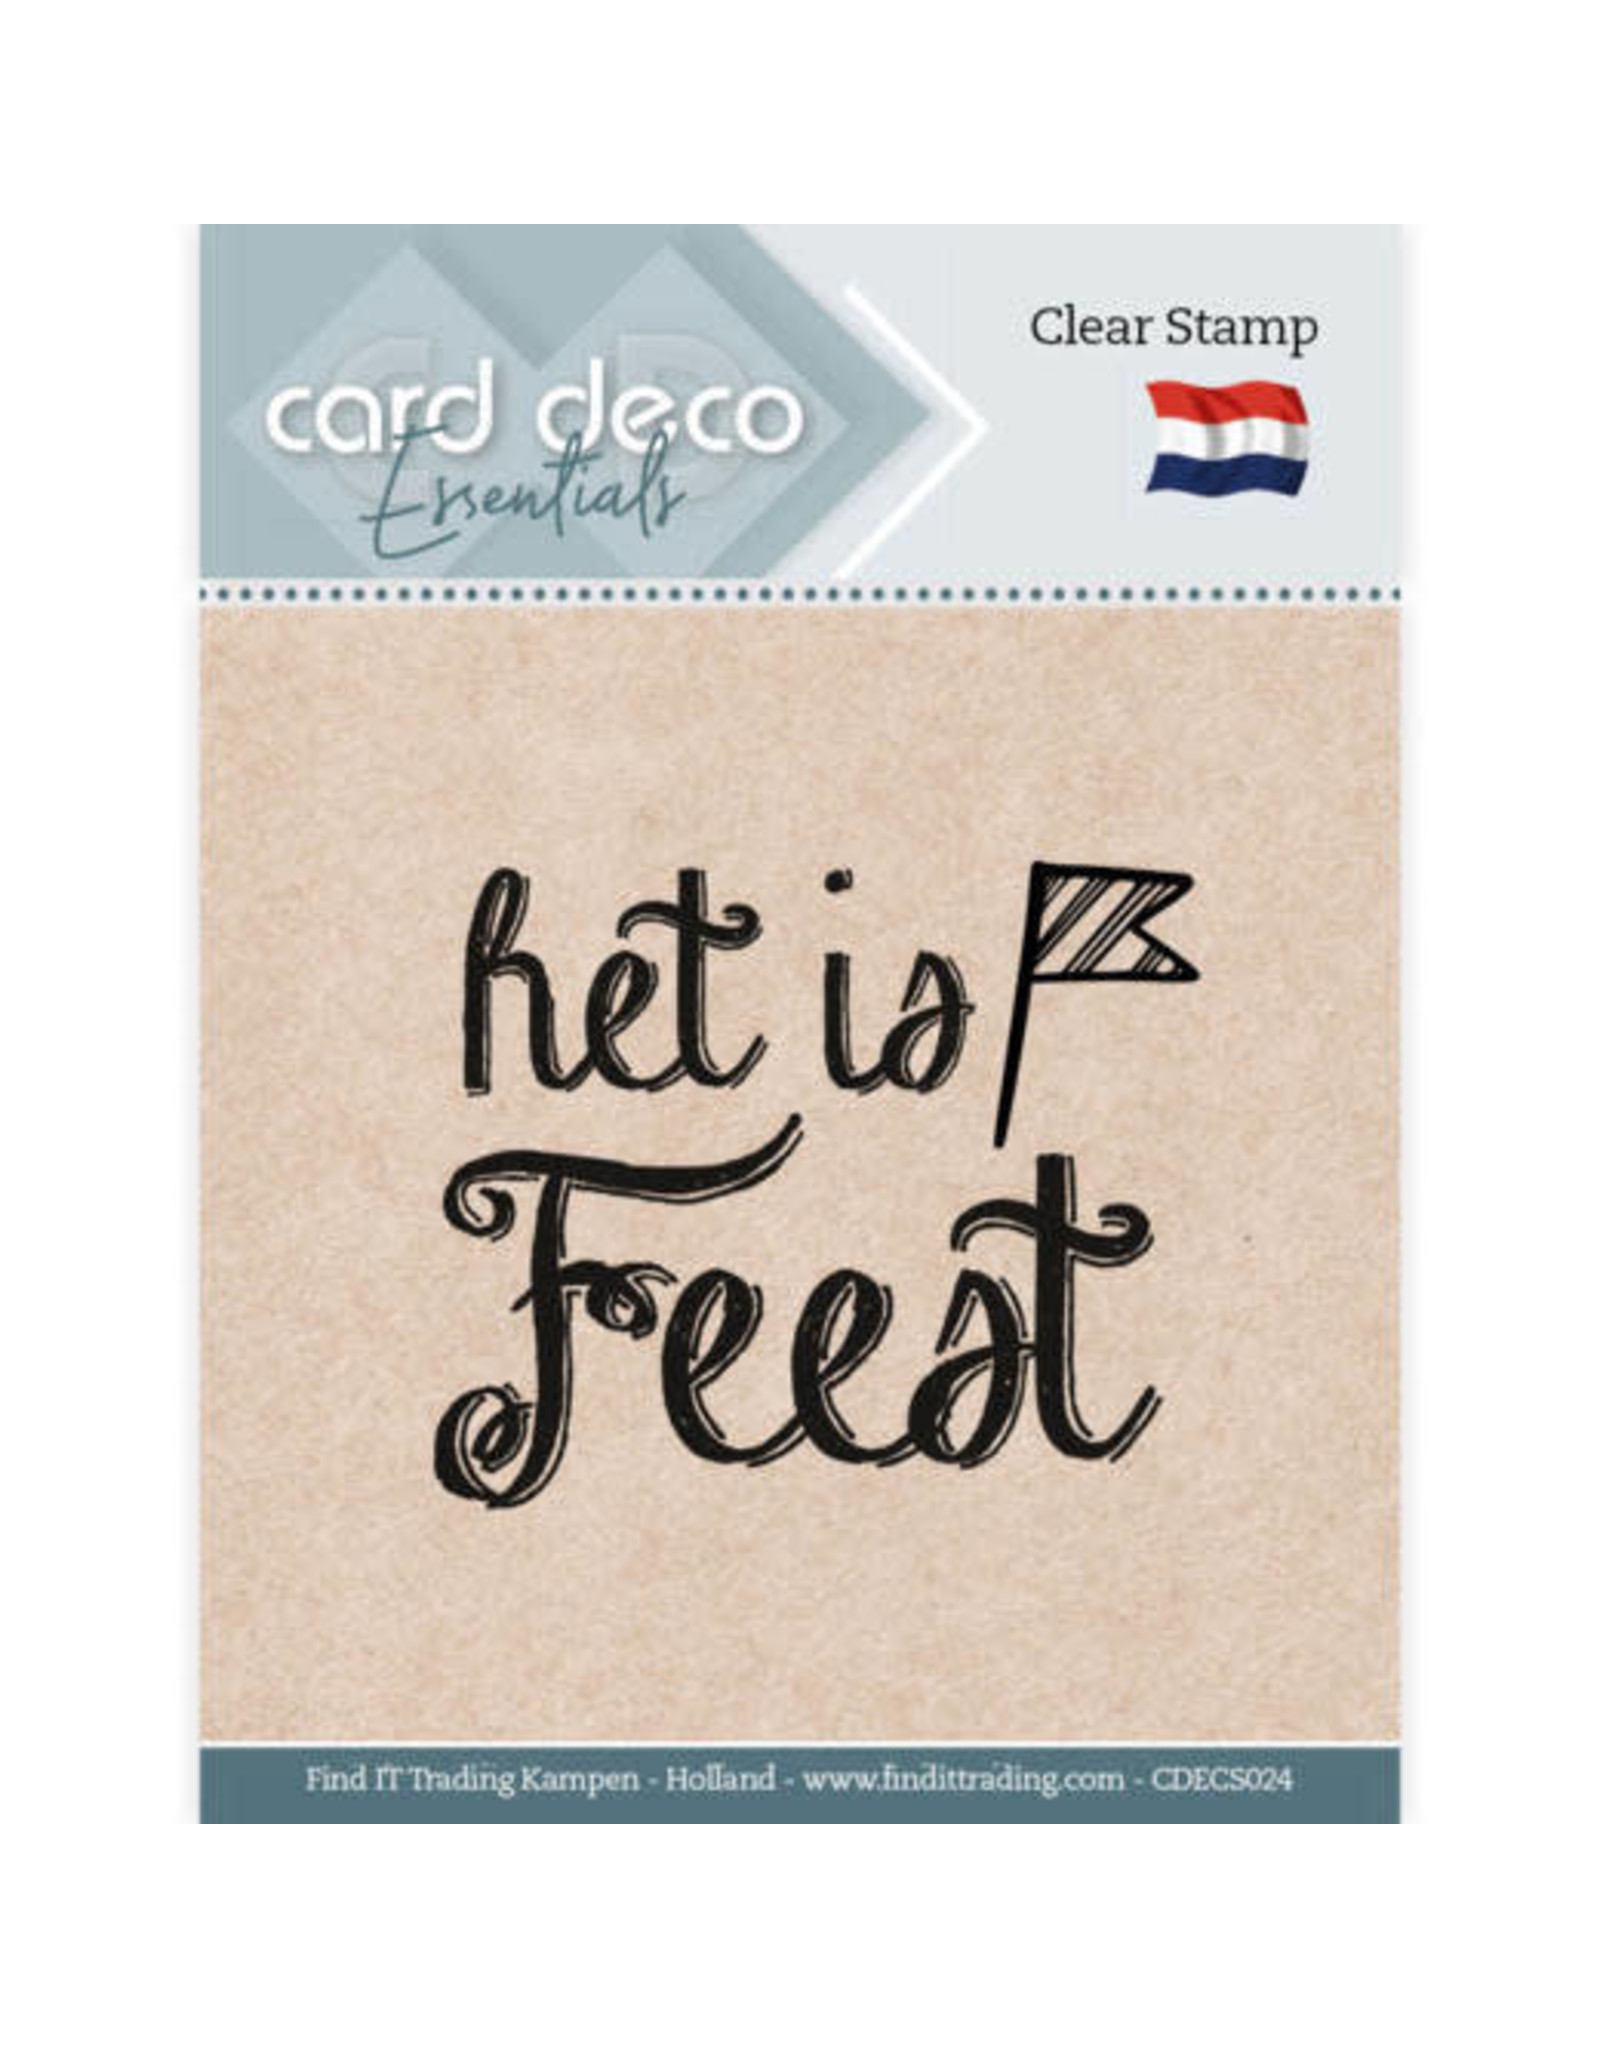 Card Deco Card Deco Essentials - Clear Stamps - Het is Feest